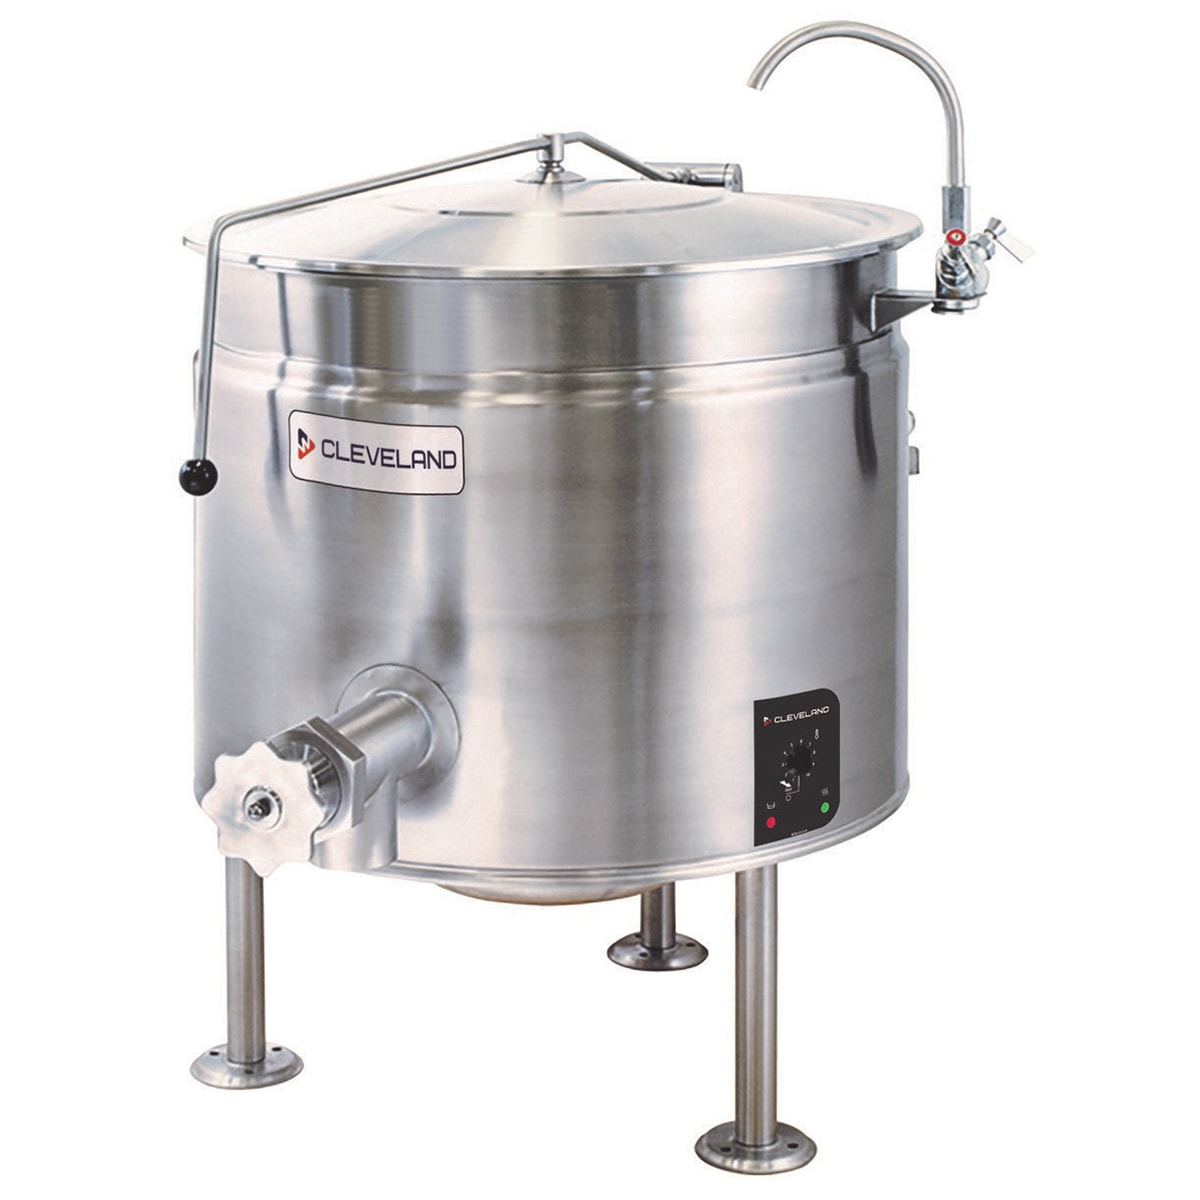 Cleveland KEL-40-SH 40 gal Full Steam Jacket Kettle w/ Open 3 Leg Base, Solid-State, 240v/3ph